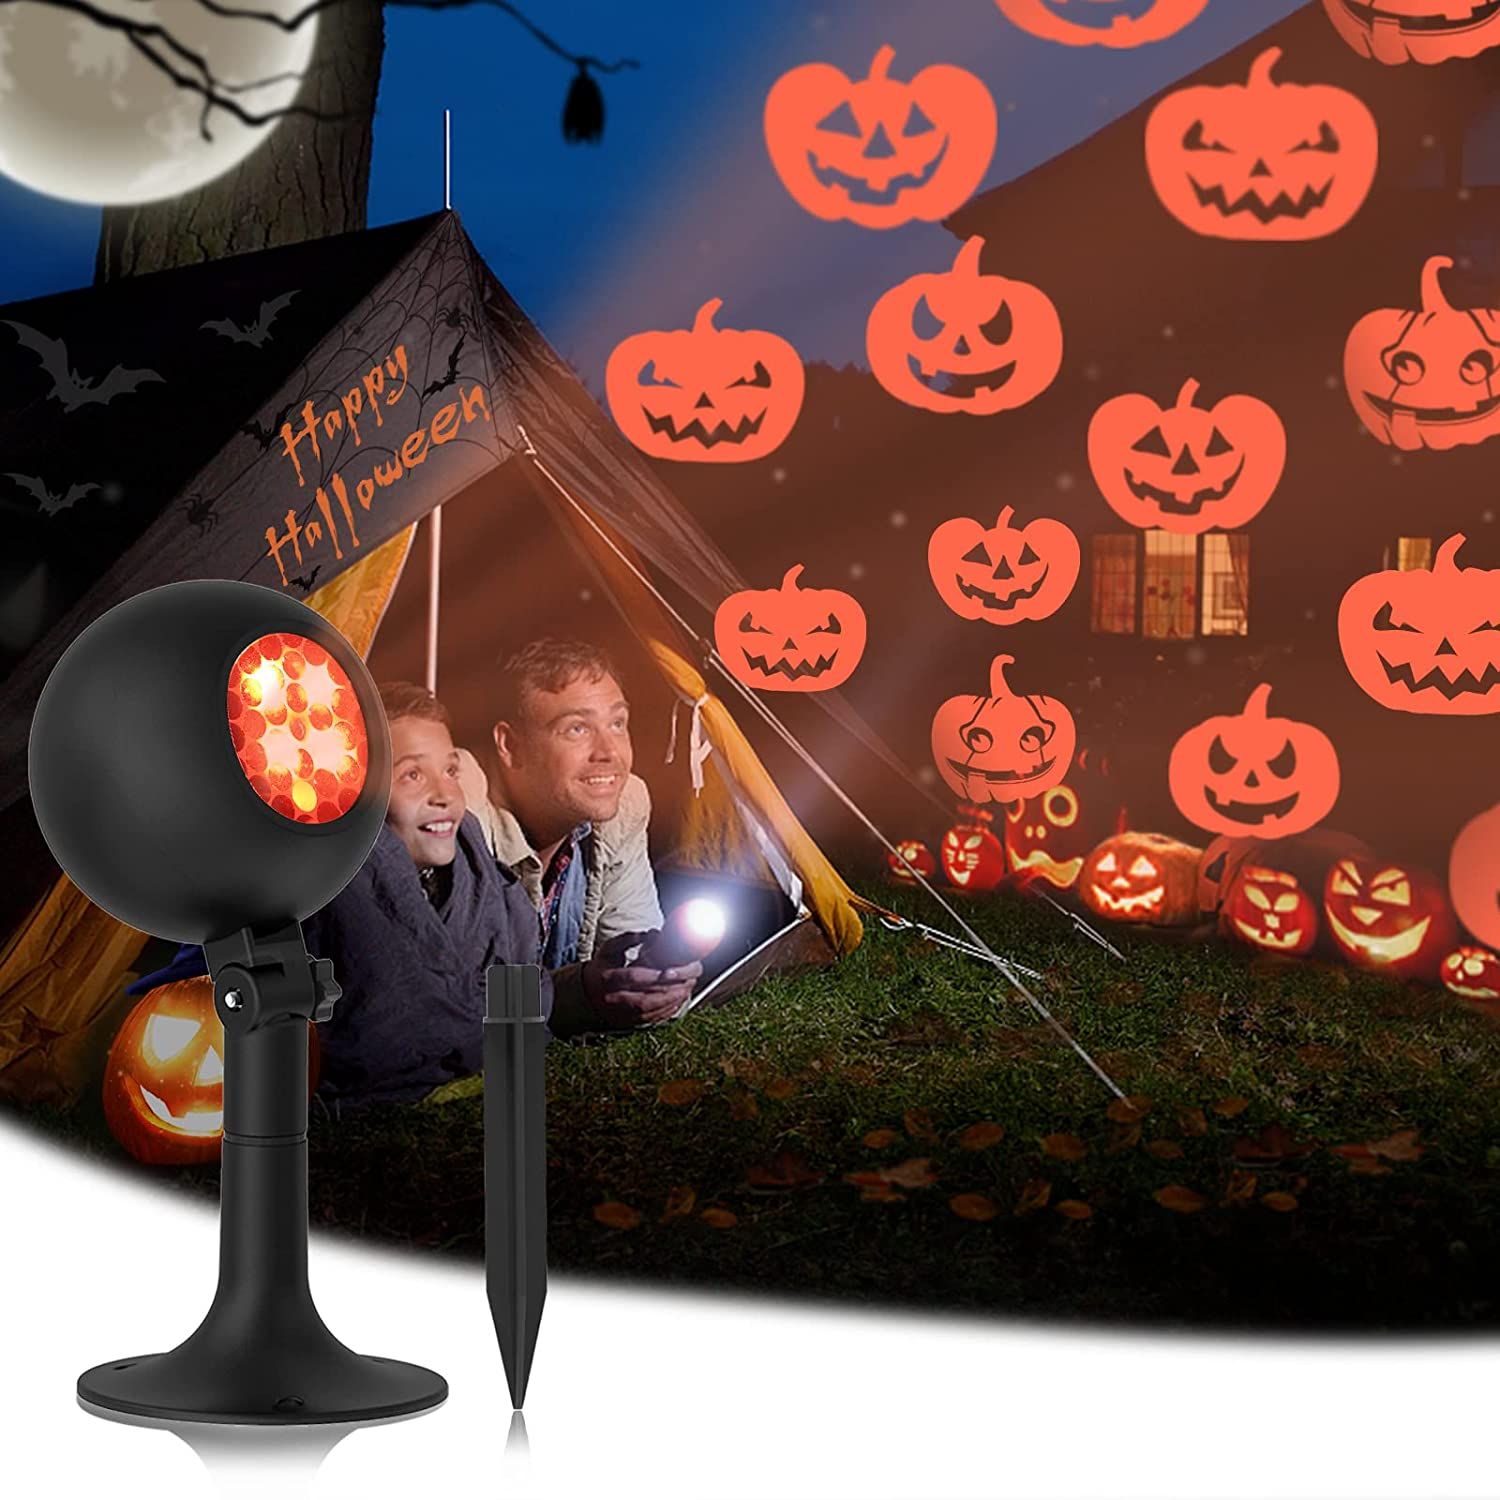 Halloween Lights, Outdoor Pumpkin Light Projector Indoor Holiday Decoration Lamp Waterproof LED Show Dynamic Spotlight Outside Night Projection for Party House Home Yard Garden Decorations